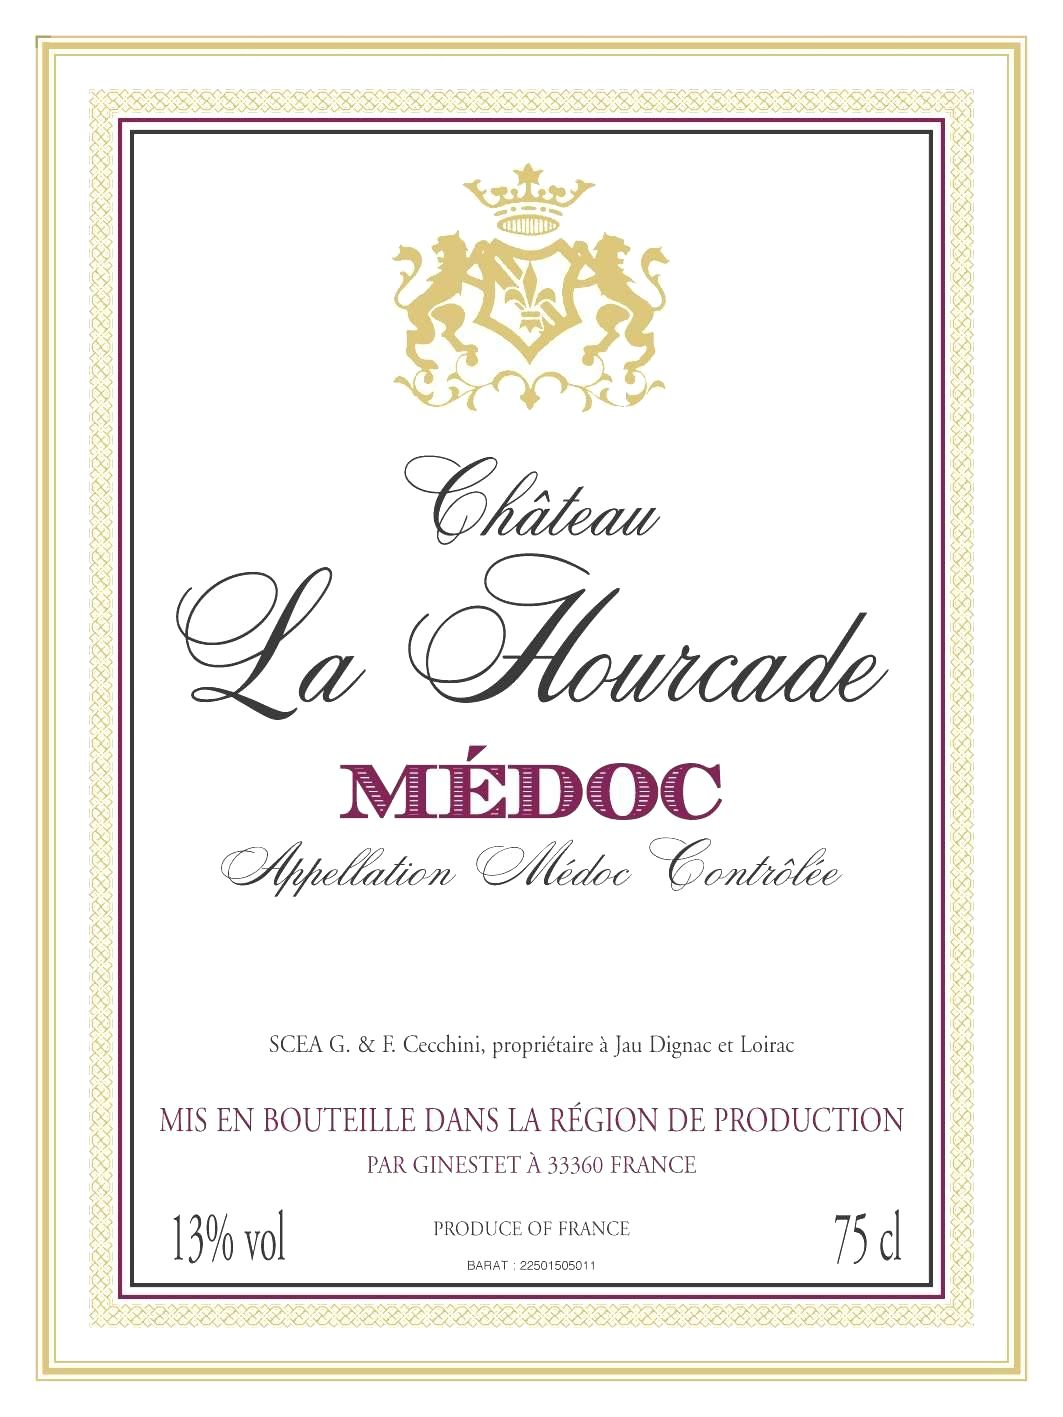 Chateau La Hourcade Medoc 2009 Front Label